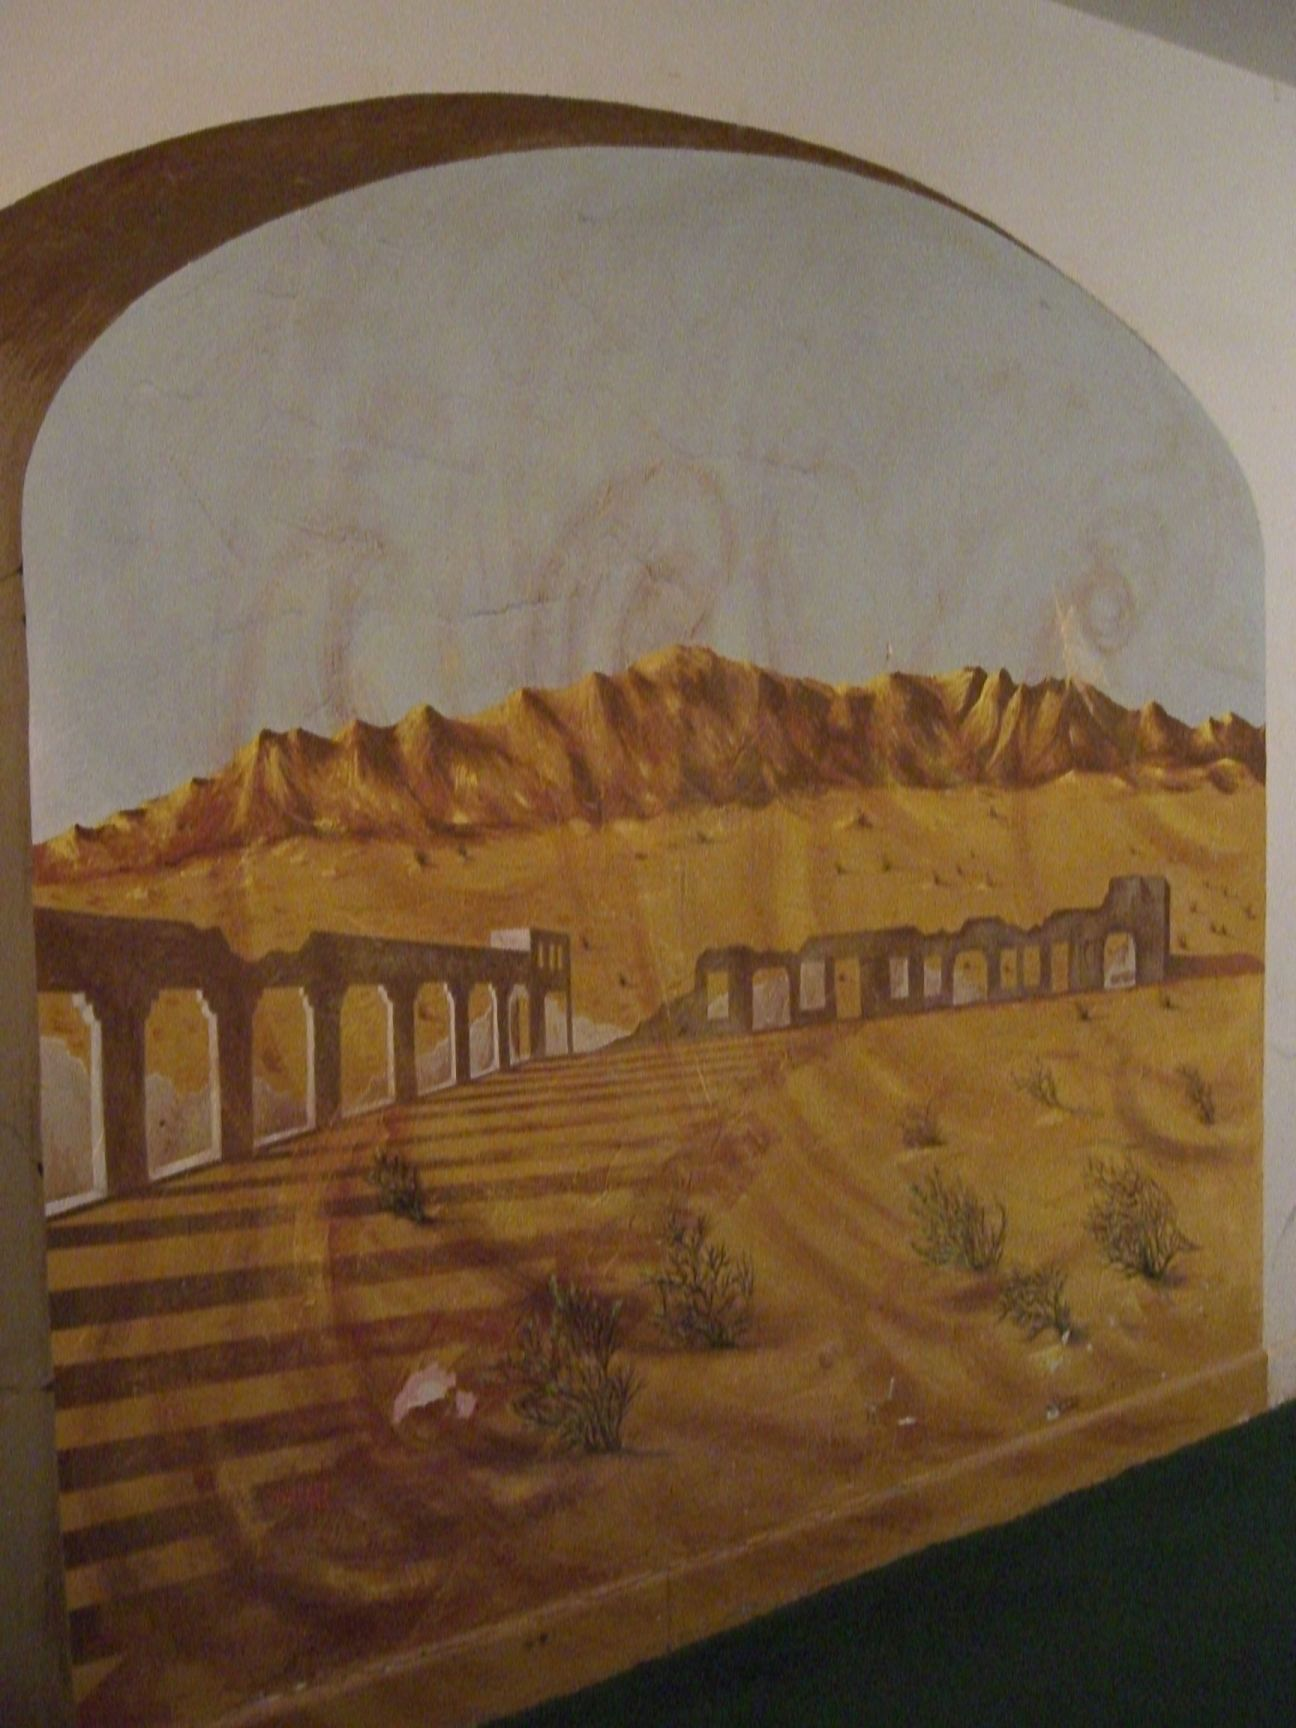 Mural - Marta's Spirit and the Amargosa